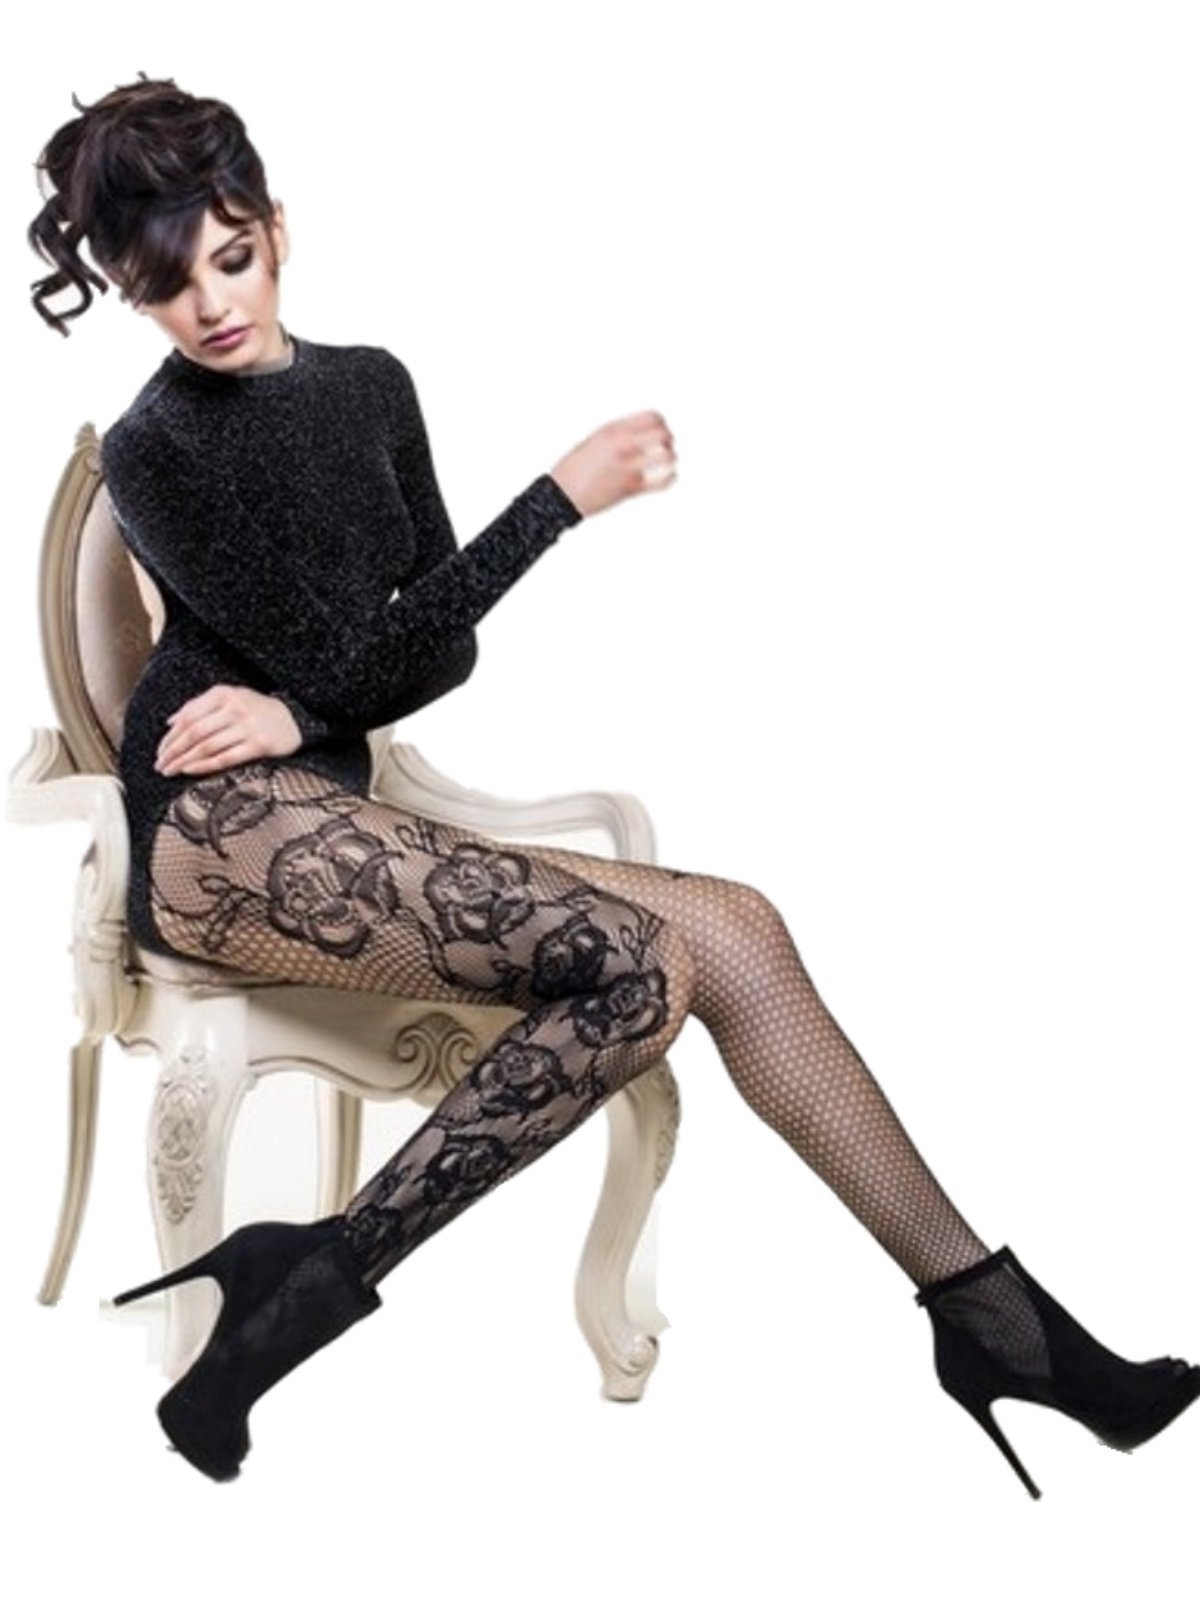 Yelete Killer Legs Women's Queen Plus Size Fishnet Pantyhose 168YD058Q, Black, Etched Side Roses